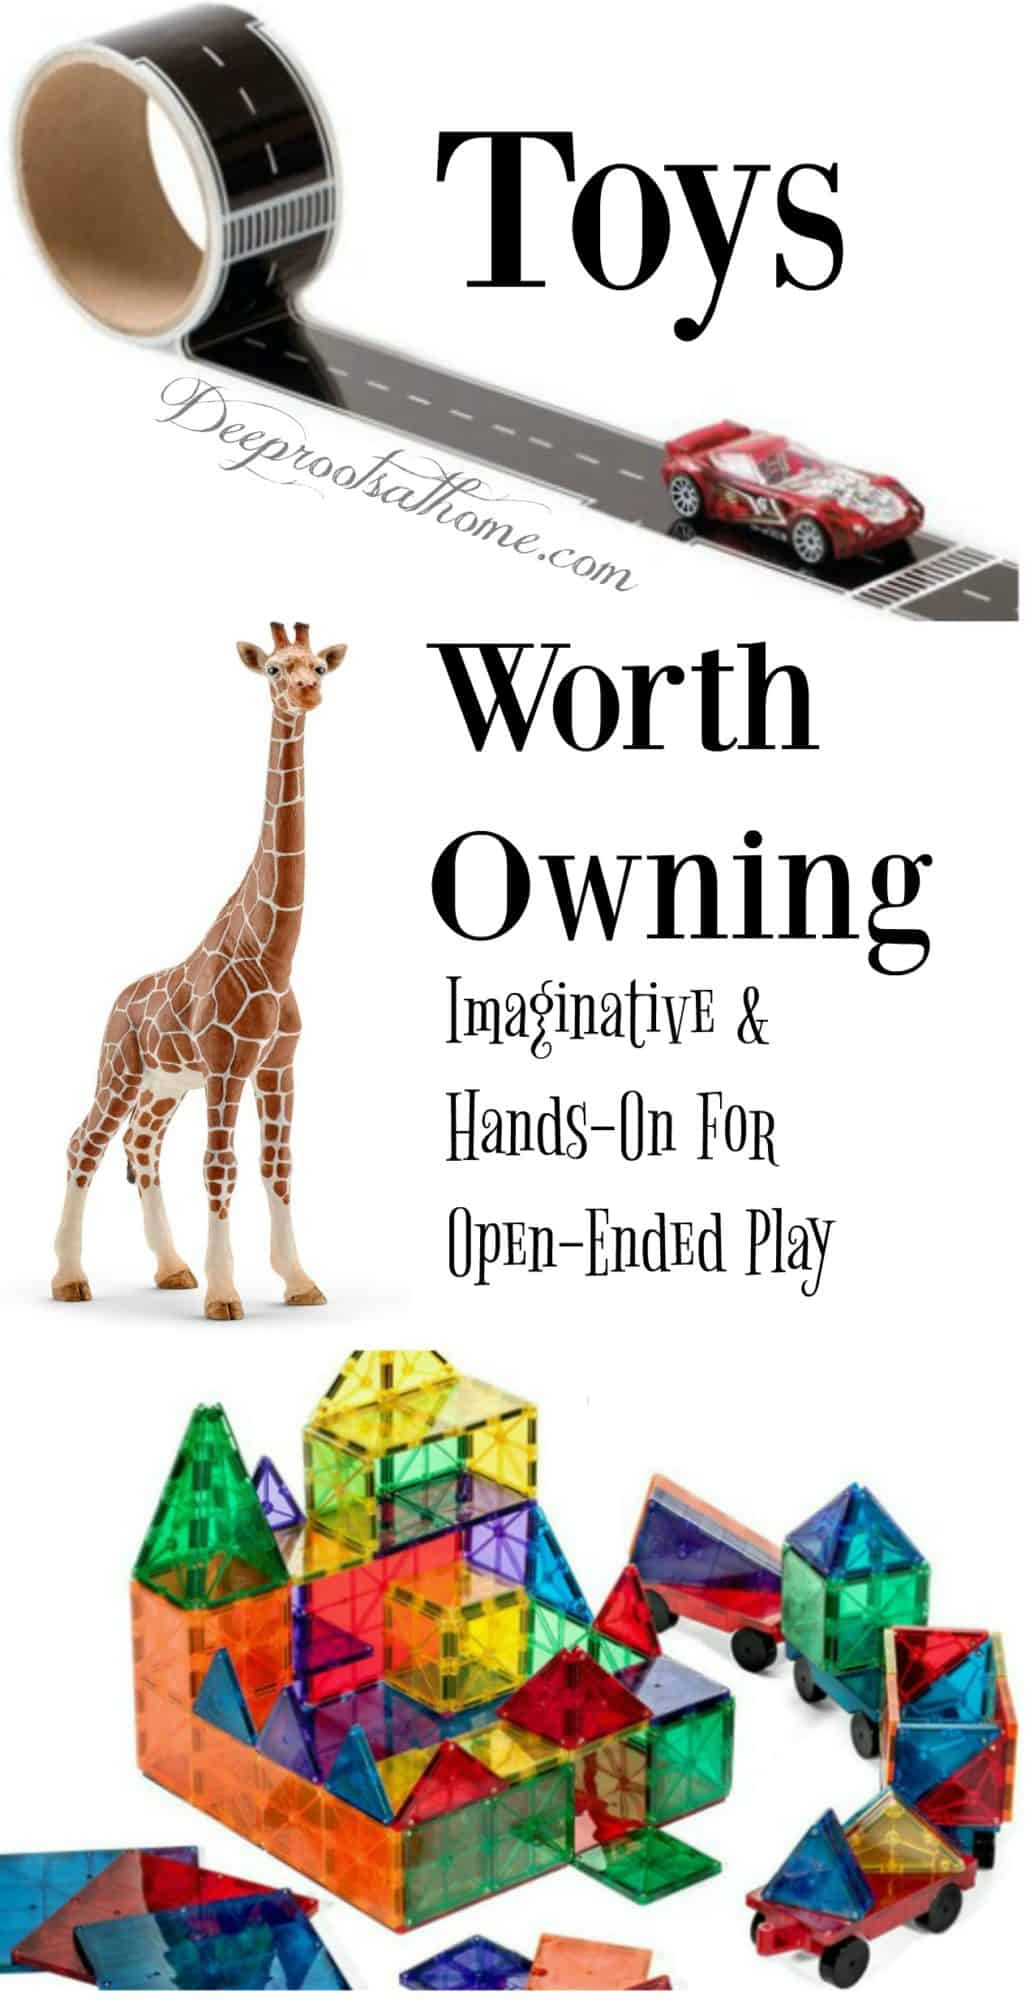 Toys Worth Owning: Curiosity-Sparking, Hands-On For Open-Ended Play, love, home, children, imagination, desire, investigative play, open-ended toys, friends, stimulate, creativity, memories, playtime, recess, early childhood, Early Childhood Cognition Lab, Department of Brain and Cognitive Sciences, Massachusetts Institute of Technology, MIT, physical environment, perceptions, language development, self-control, awareness, spacial orientation, self-confidence, communication, bored, feel entitled, little patience, real friends, building farms, animals, toy soldiers, castles, racing cars, mats, dress-up, accessories, home-made forts, building blocks, talking animal figures, memorable objects, flower toy, little homemakers, favorites, holiday shopping, gifts, building, construction, magnetic tiles, building set, wooden blocks, Melissa & Doug, Fort Magic, Marble run, Legos, yellow submarine, kiddie pool, garage sales, wooden train set, Thomas the Tank Engine, Engineering building set, train cars, space shuttle, cardboard building blocks, food and kitchen play, pirate ship, Lincoln Logs, Gears, Fischertechnik, wooden 4 food group set, usable dishes, play pots and pans, Let's play house broom, mop, dusting set, cardboard boxes, race courses, puppet theatre, plastic Army men, dolls, puppets, tents, silks, props, old costumes, Etch-A-Sketch, sewing machine, hammock, outside toys, outdoors, Star, Constellation, H.A. Rey, Curious George, monocular telescope, sprinkler, wagon, hatchet, hammer, bubble wands, butterfly wings, moth wings, Magic Cabin store, growing old, staying young, quote, George Bernard Shaw